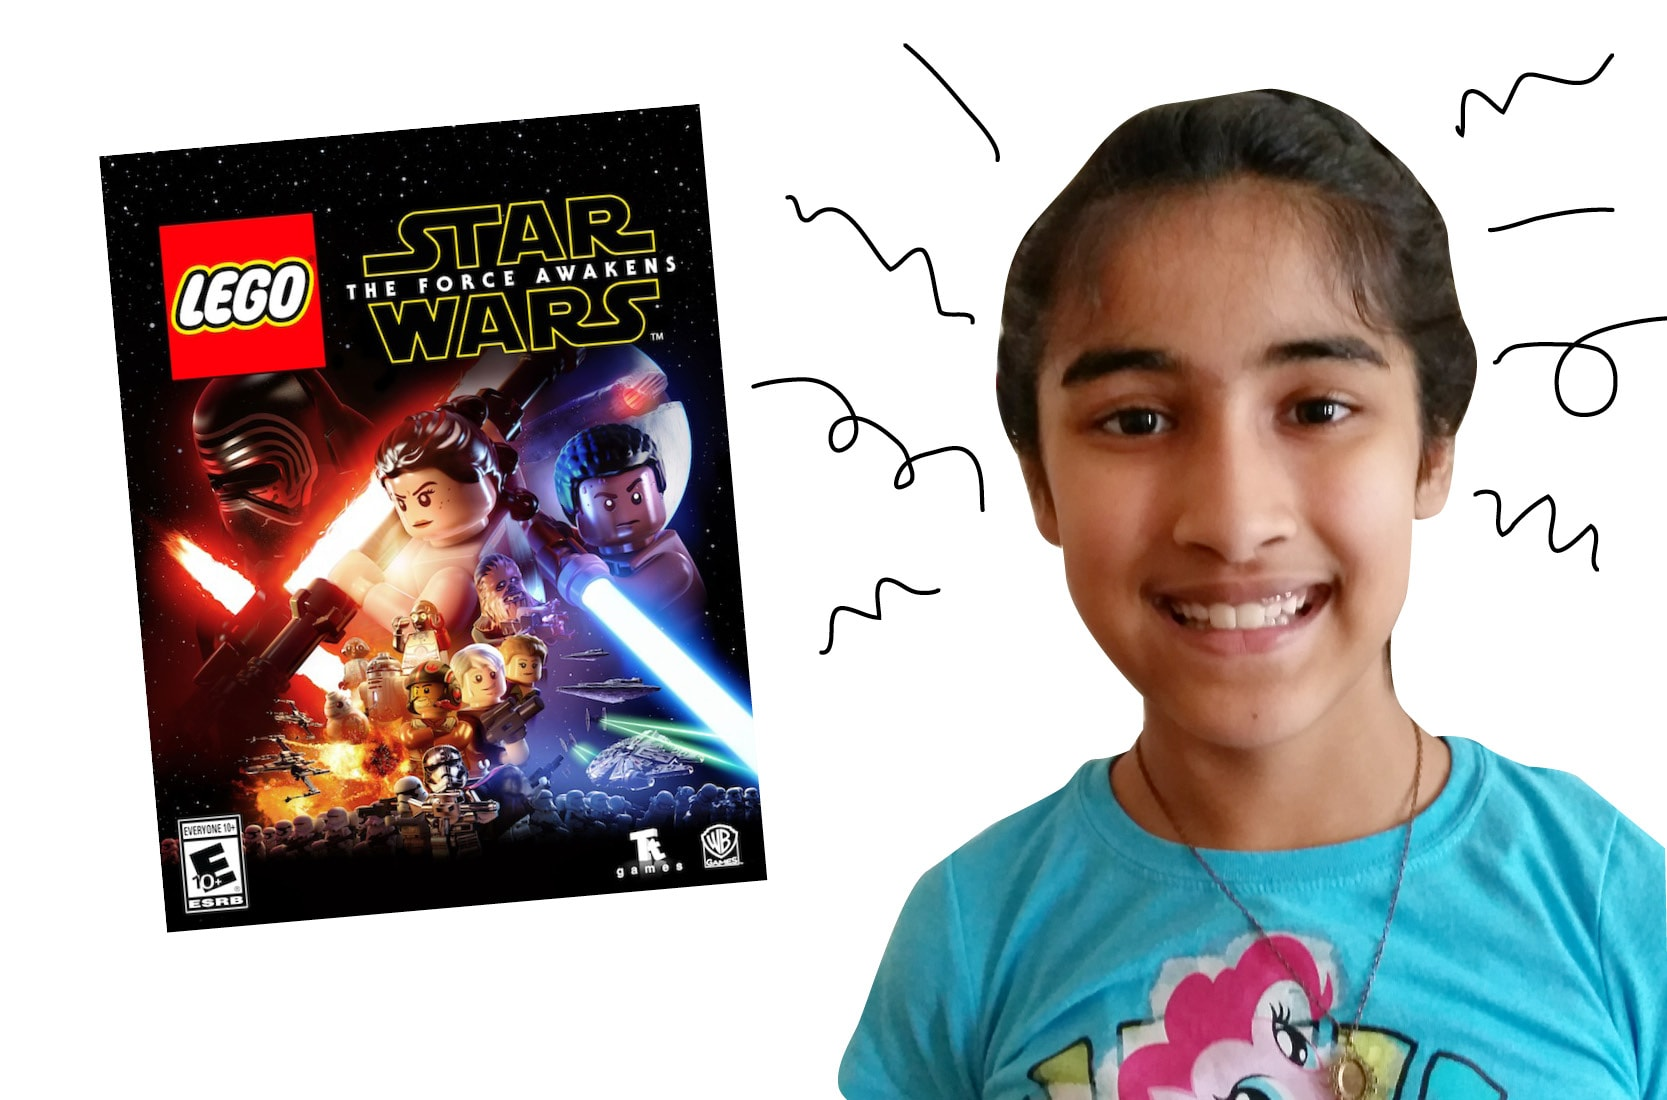 OWL reader Paavni and LEGO Star Wars: The Force Awakens video game